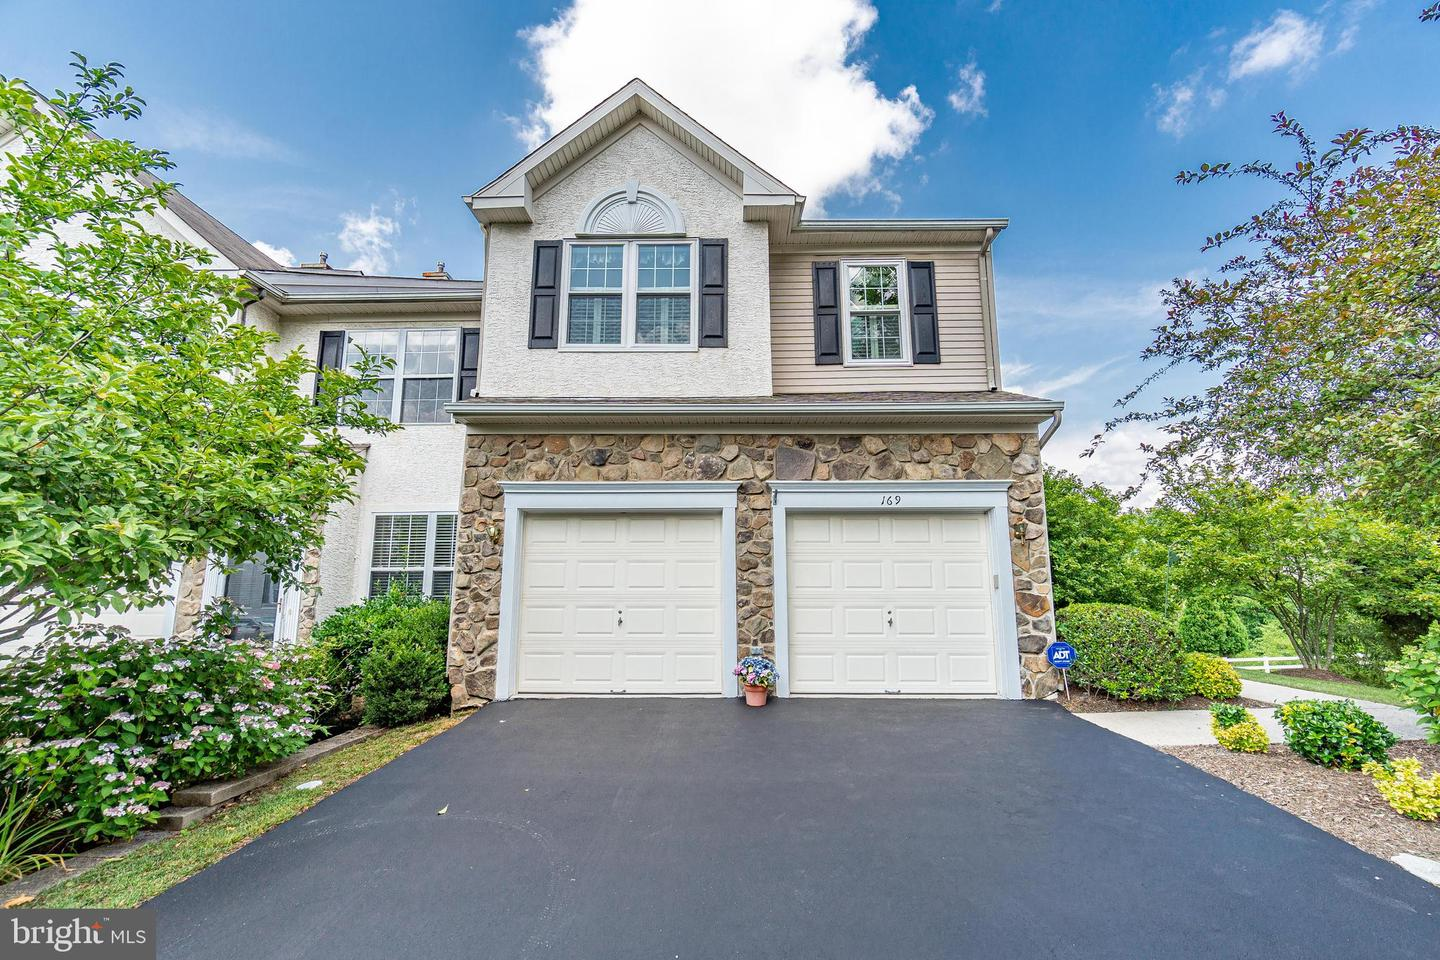 169 Mountain View Drive West Chester , PA 19380